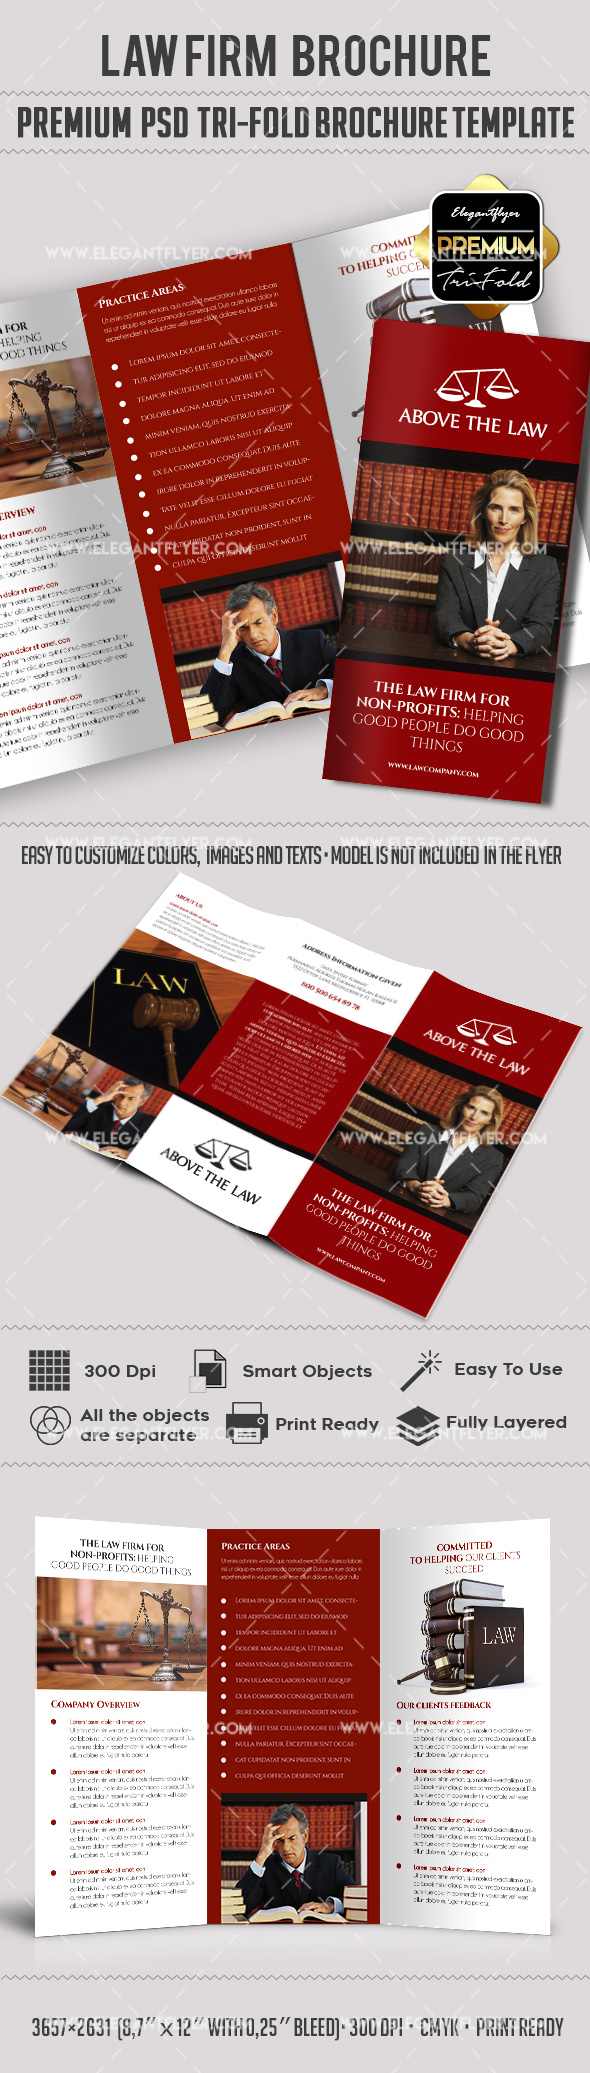 legal brochure template - law company premium tri fold psd brochure template by